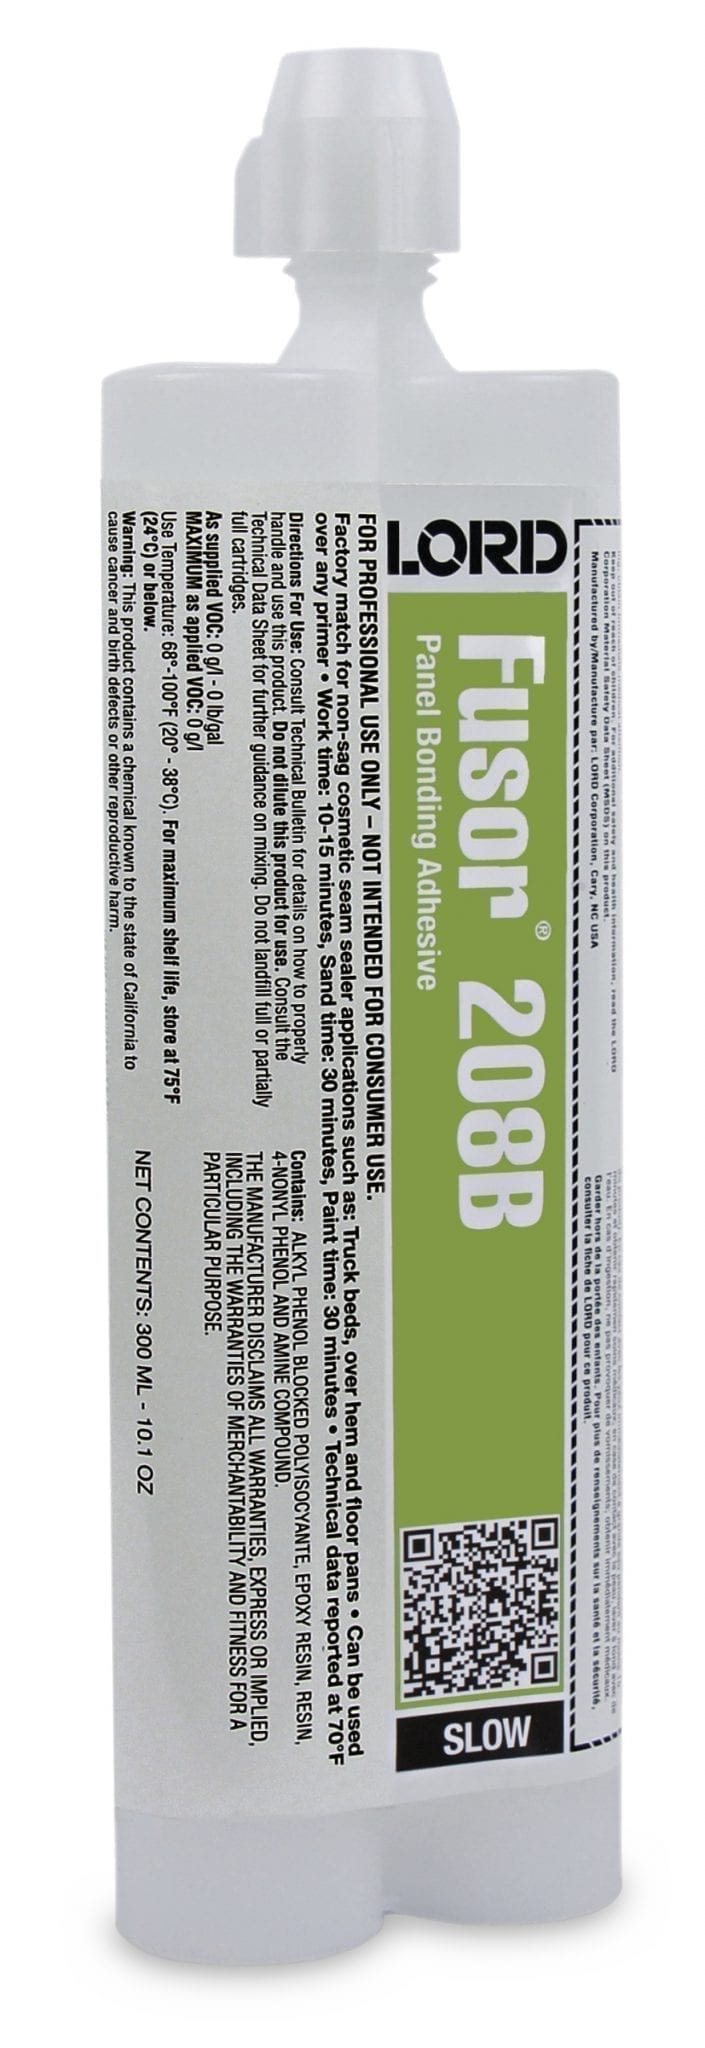 Lord Fusor 208b Slow Panel Bonding Adhesive 300ml